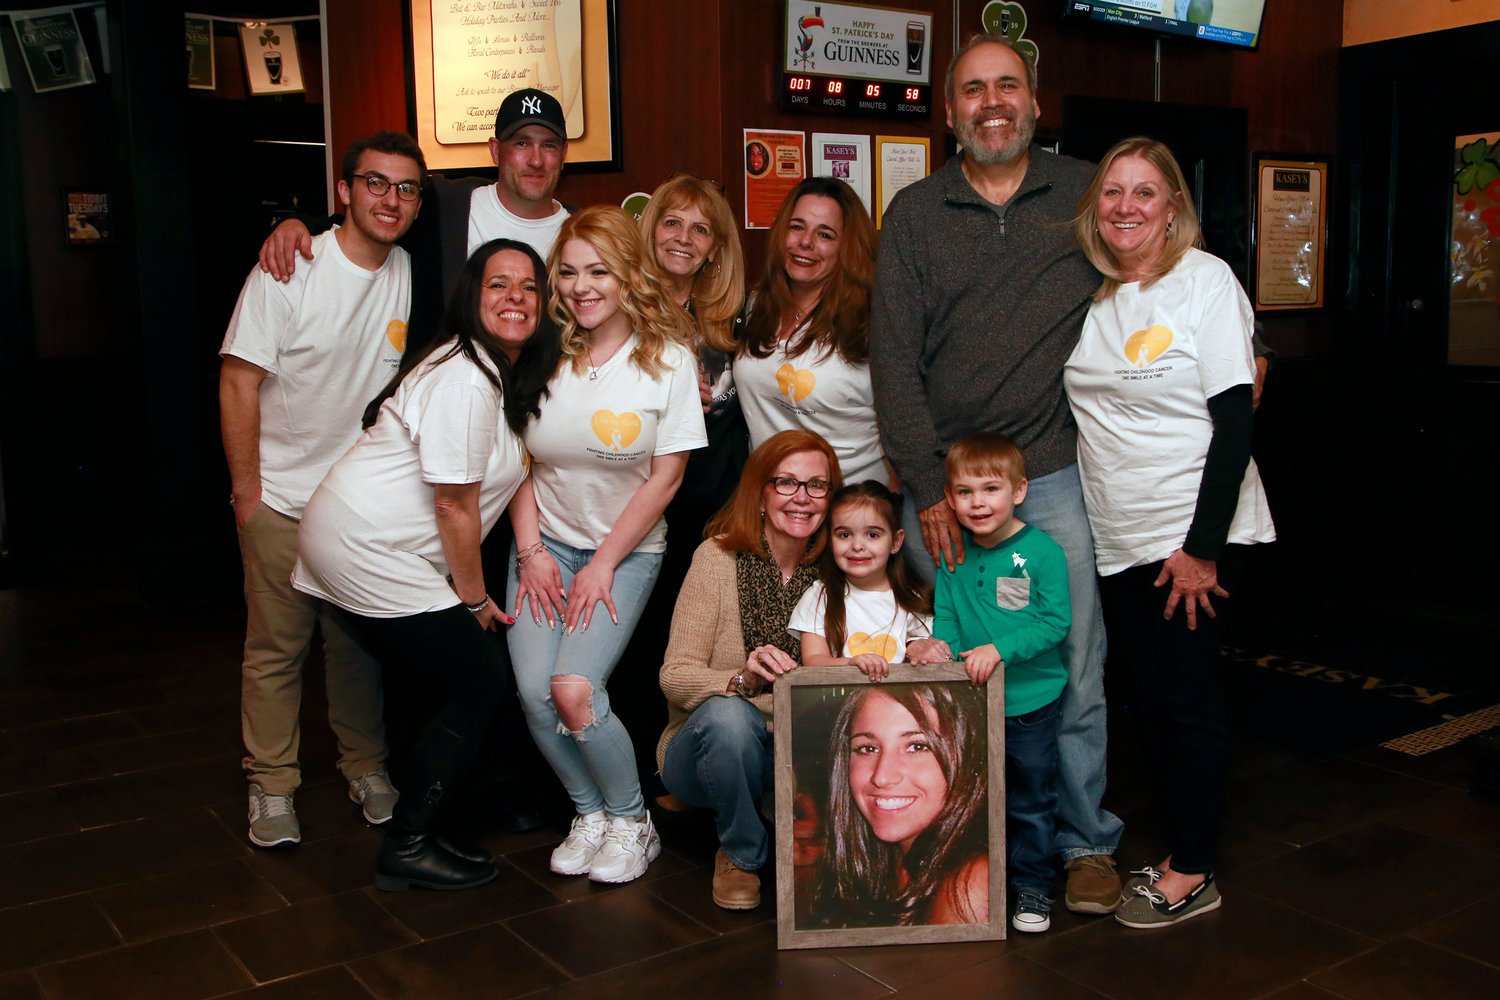 Gina Giallombardo's family members gathered at the 10th annual Life For Gina fundraiser.